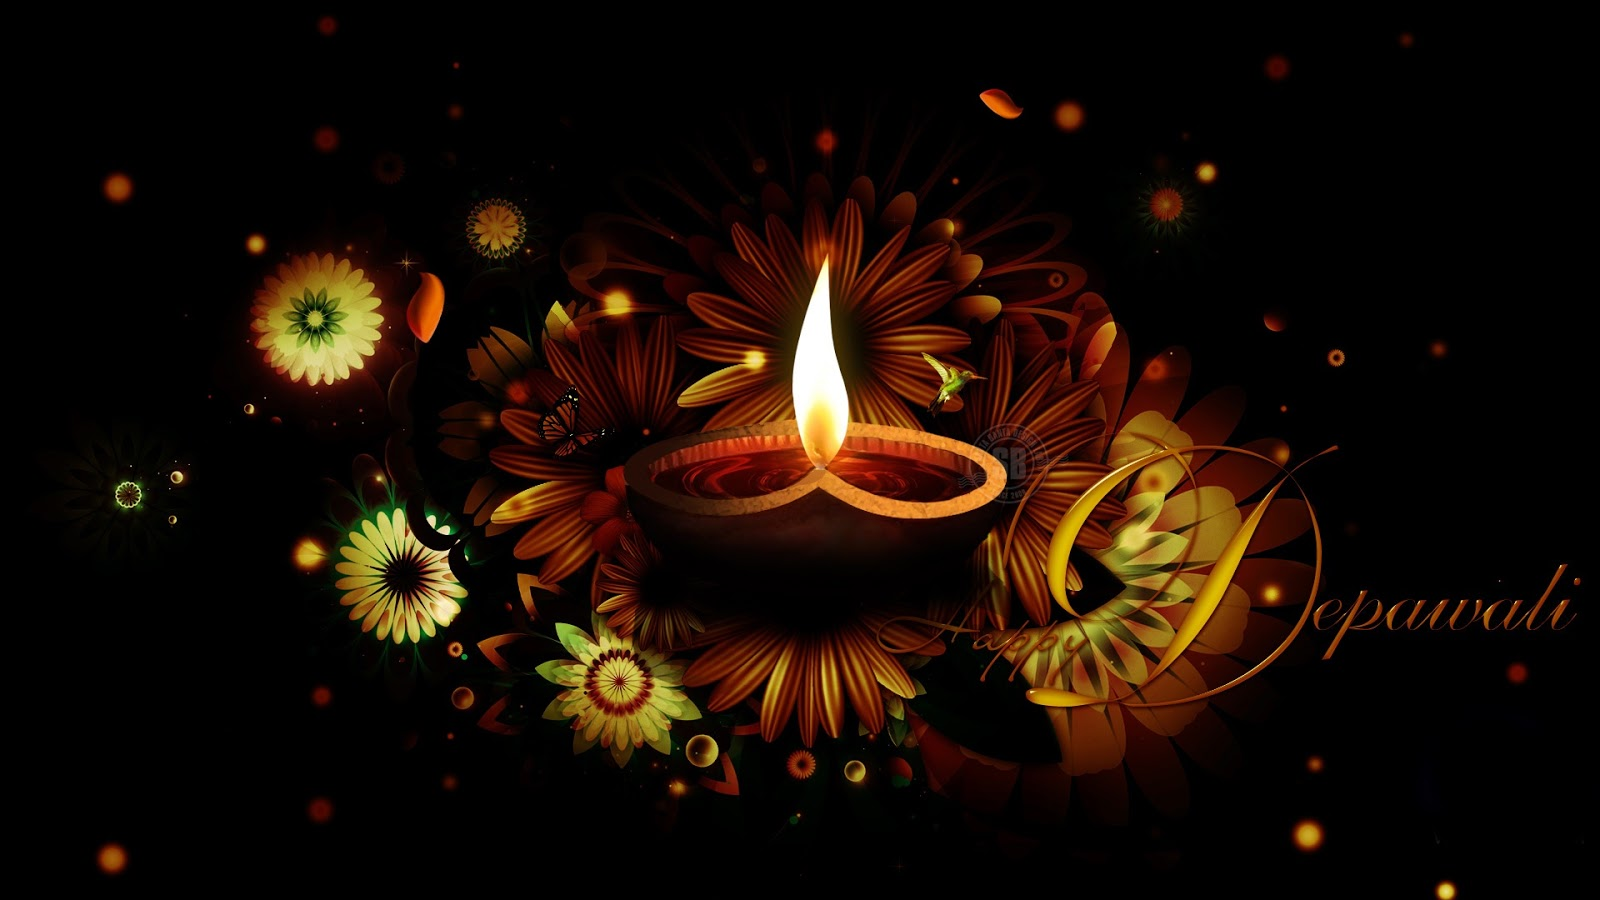 Diwali Wishes Quotes Wallpapers Download Latest Diwali Images 2016 Download Deepavali Wallpaper